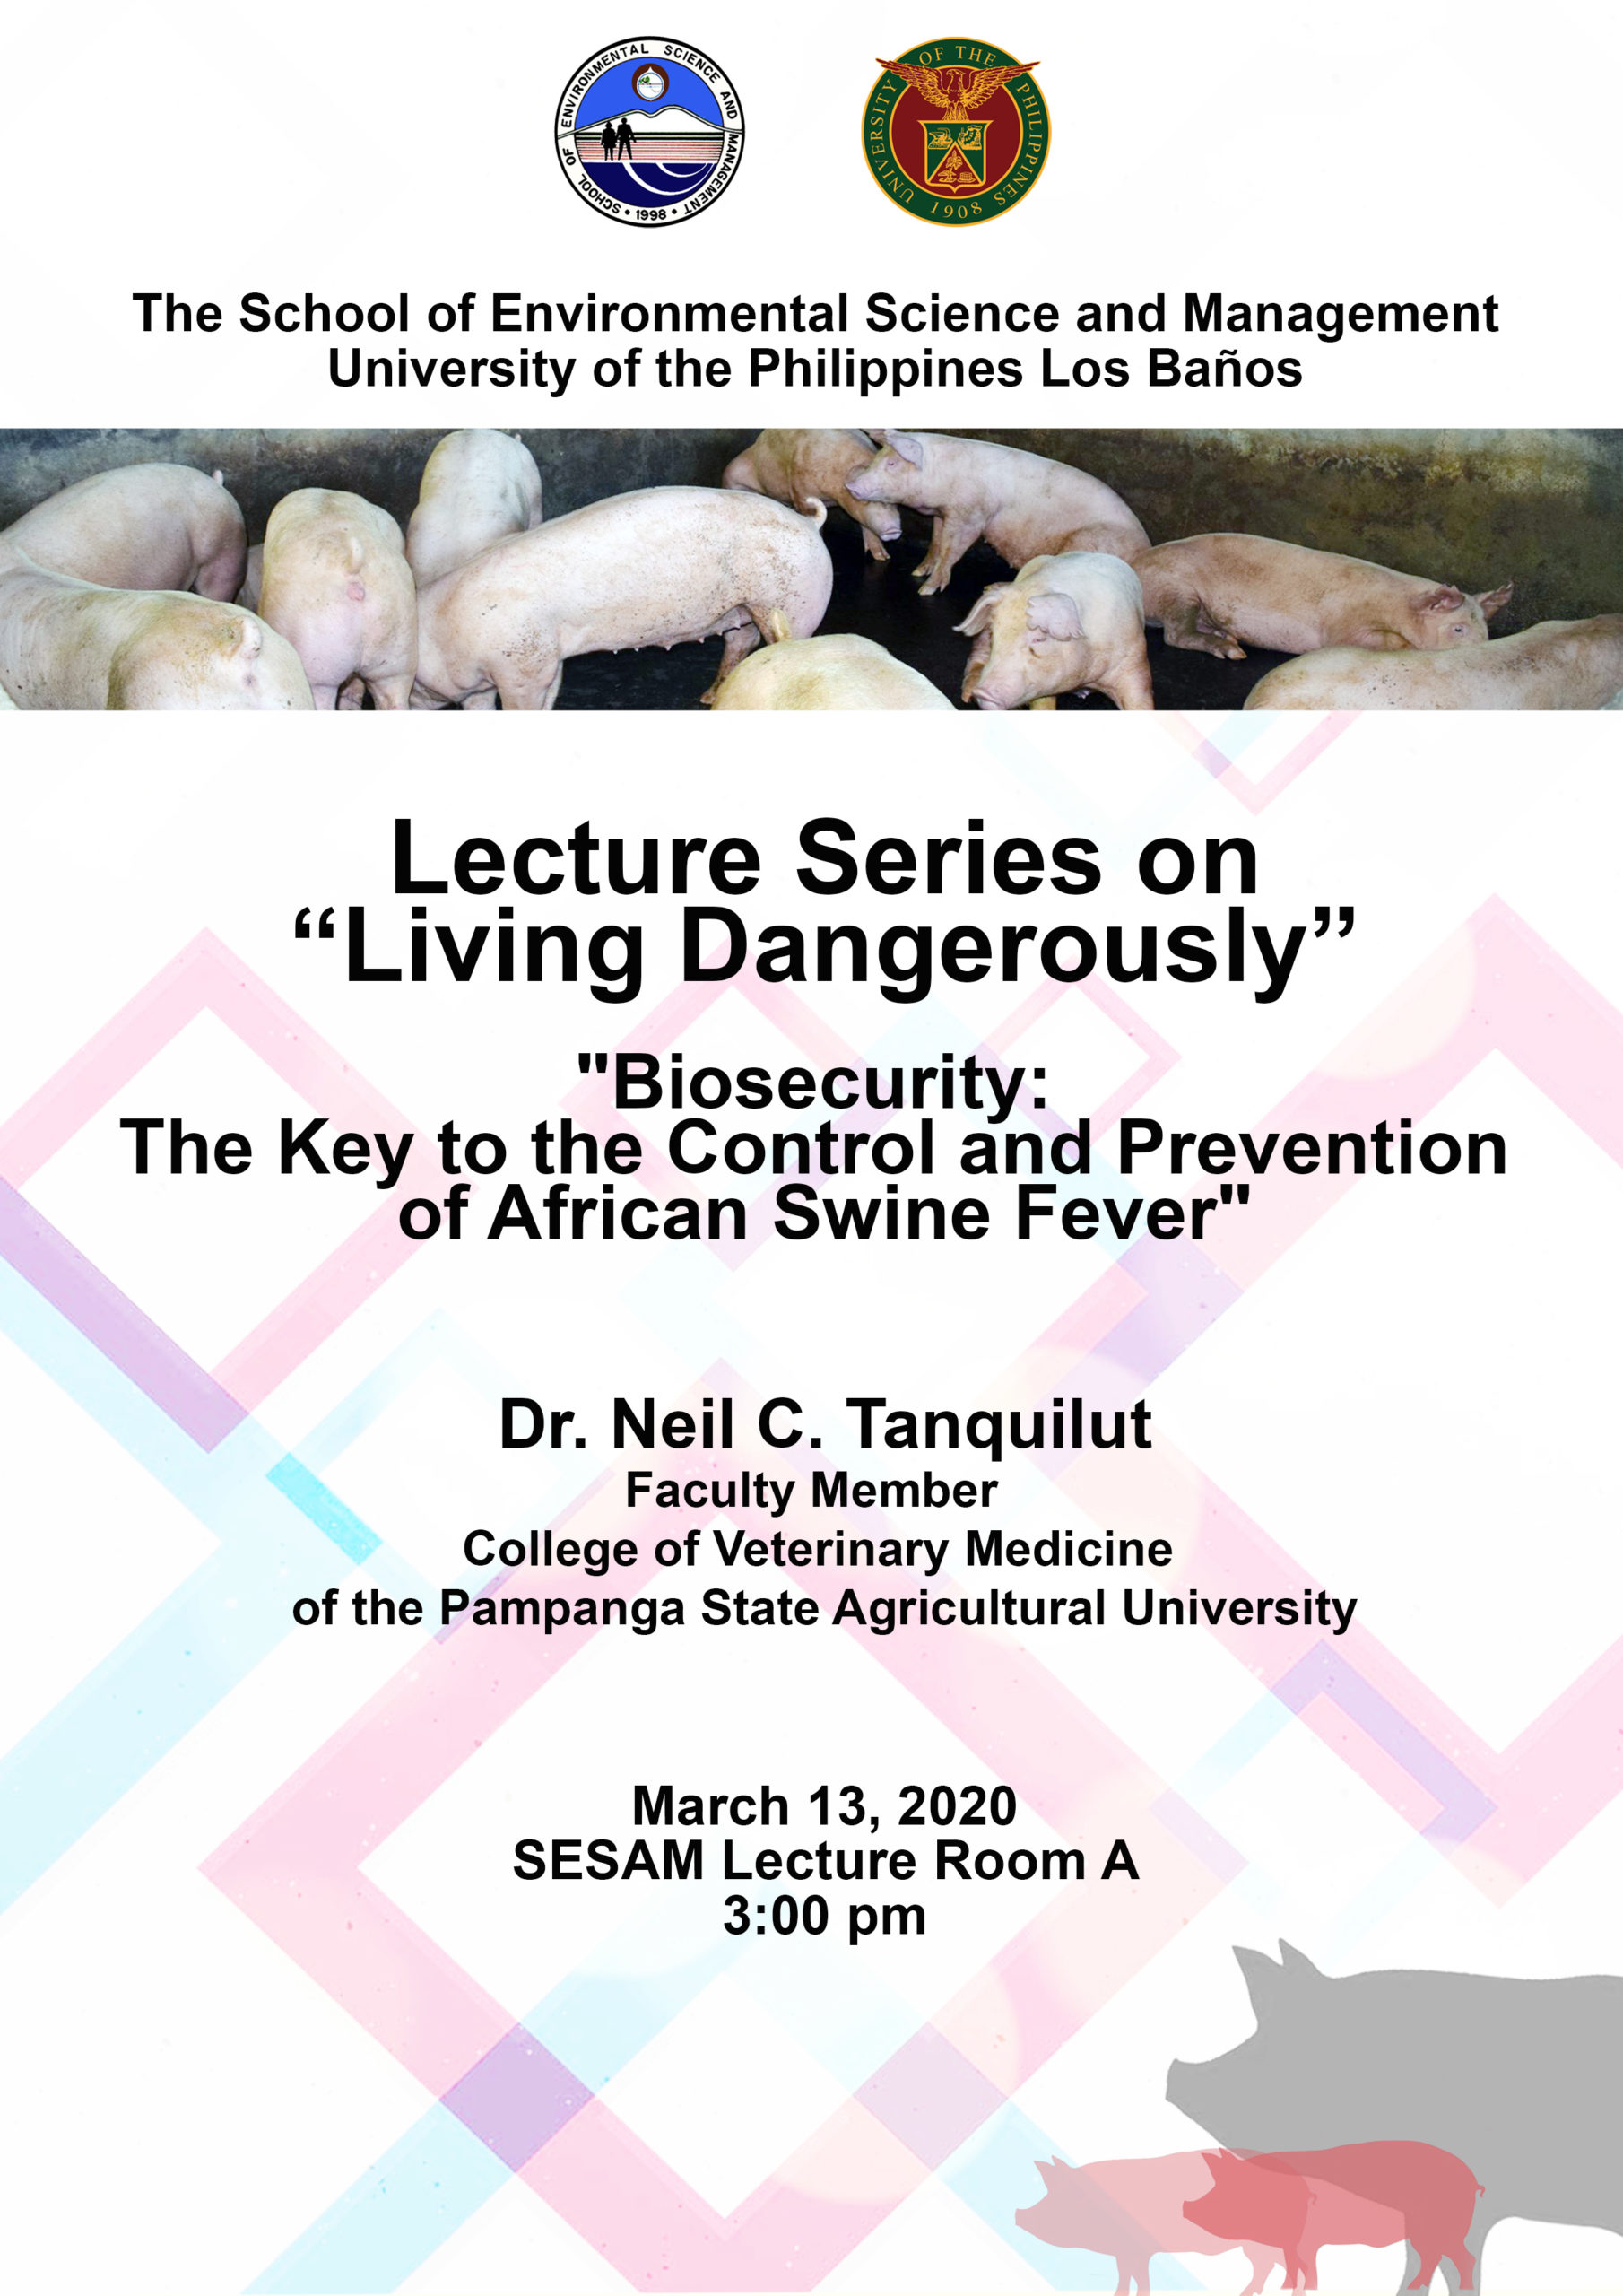 Announcement: Dr. Tanquilut's lecture is postponed